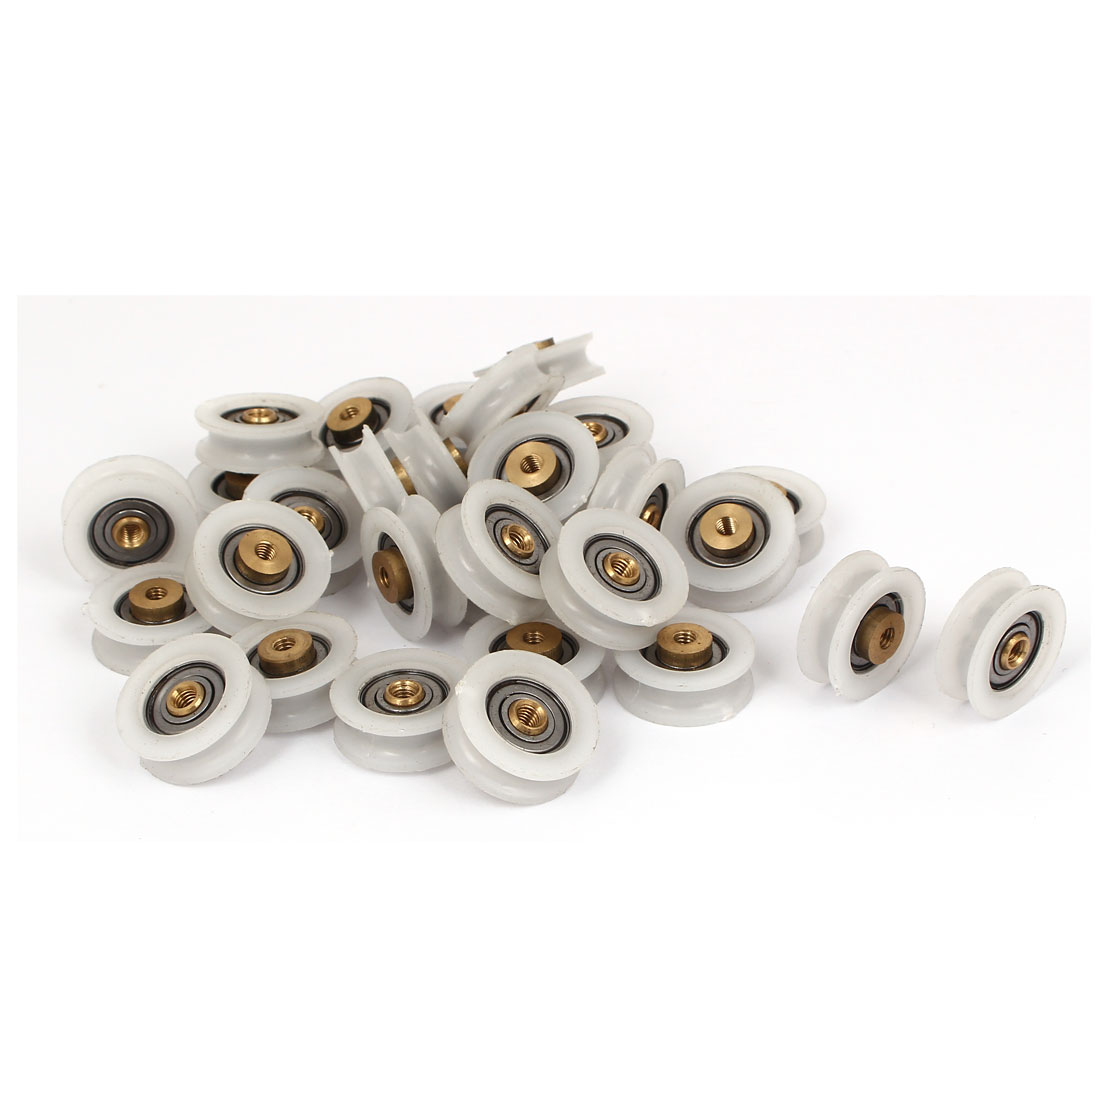 Round Groove Nylon Pulley Wheels Roller 30 Pcs for 5mm Rope